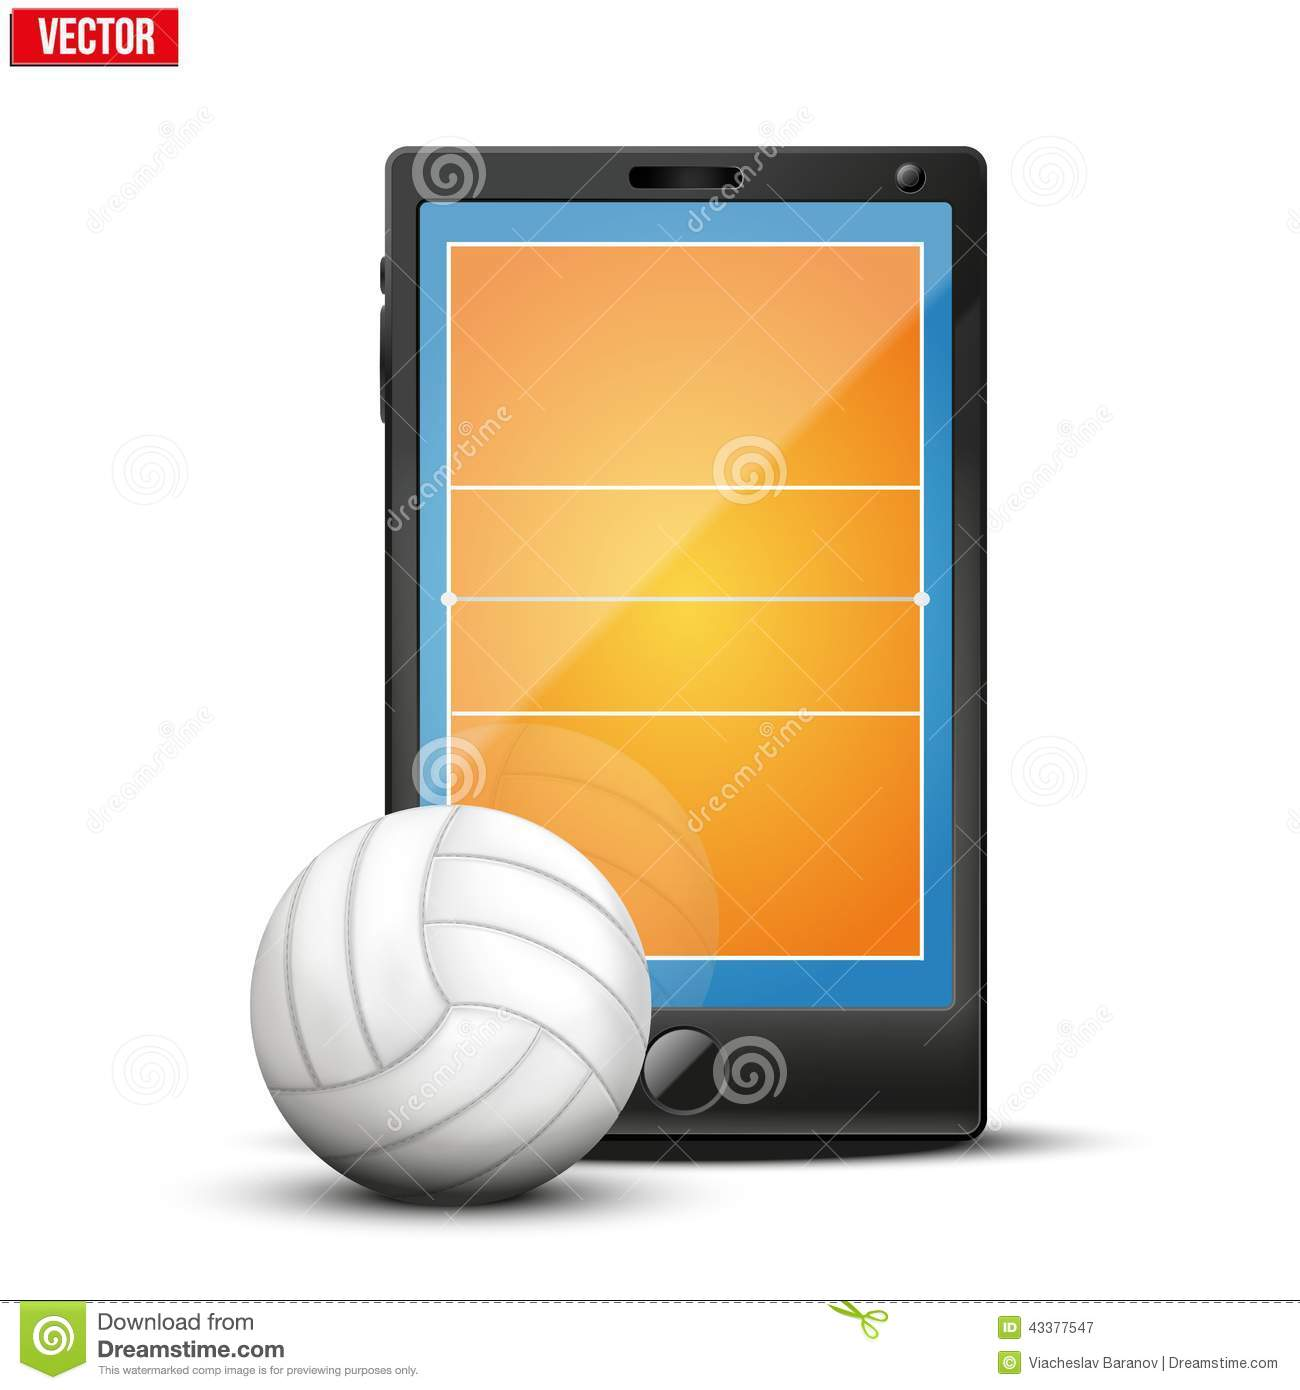 Smartphone with volleyball ball and field on the